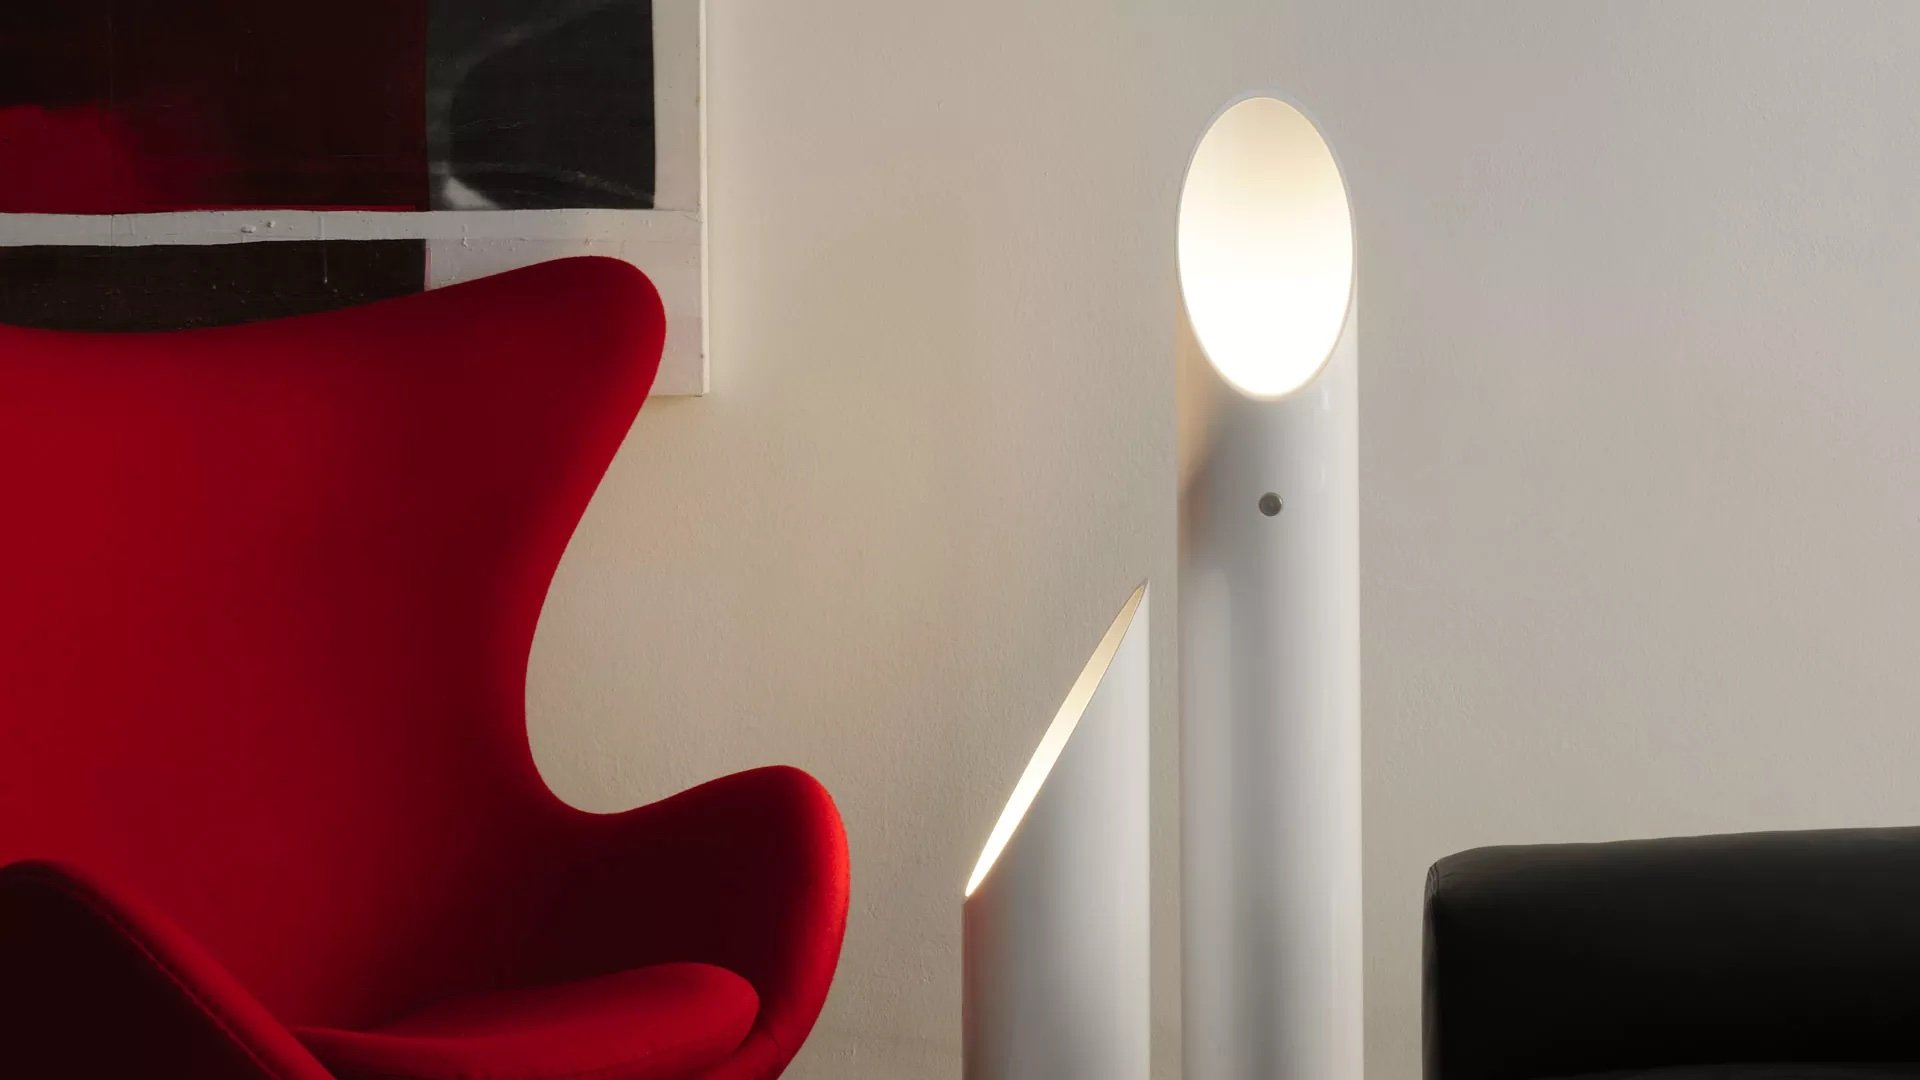 Beth Lamp lighting from Oluce, designed by Carlo Colombo